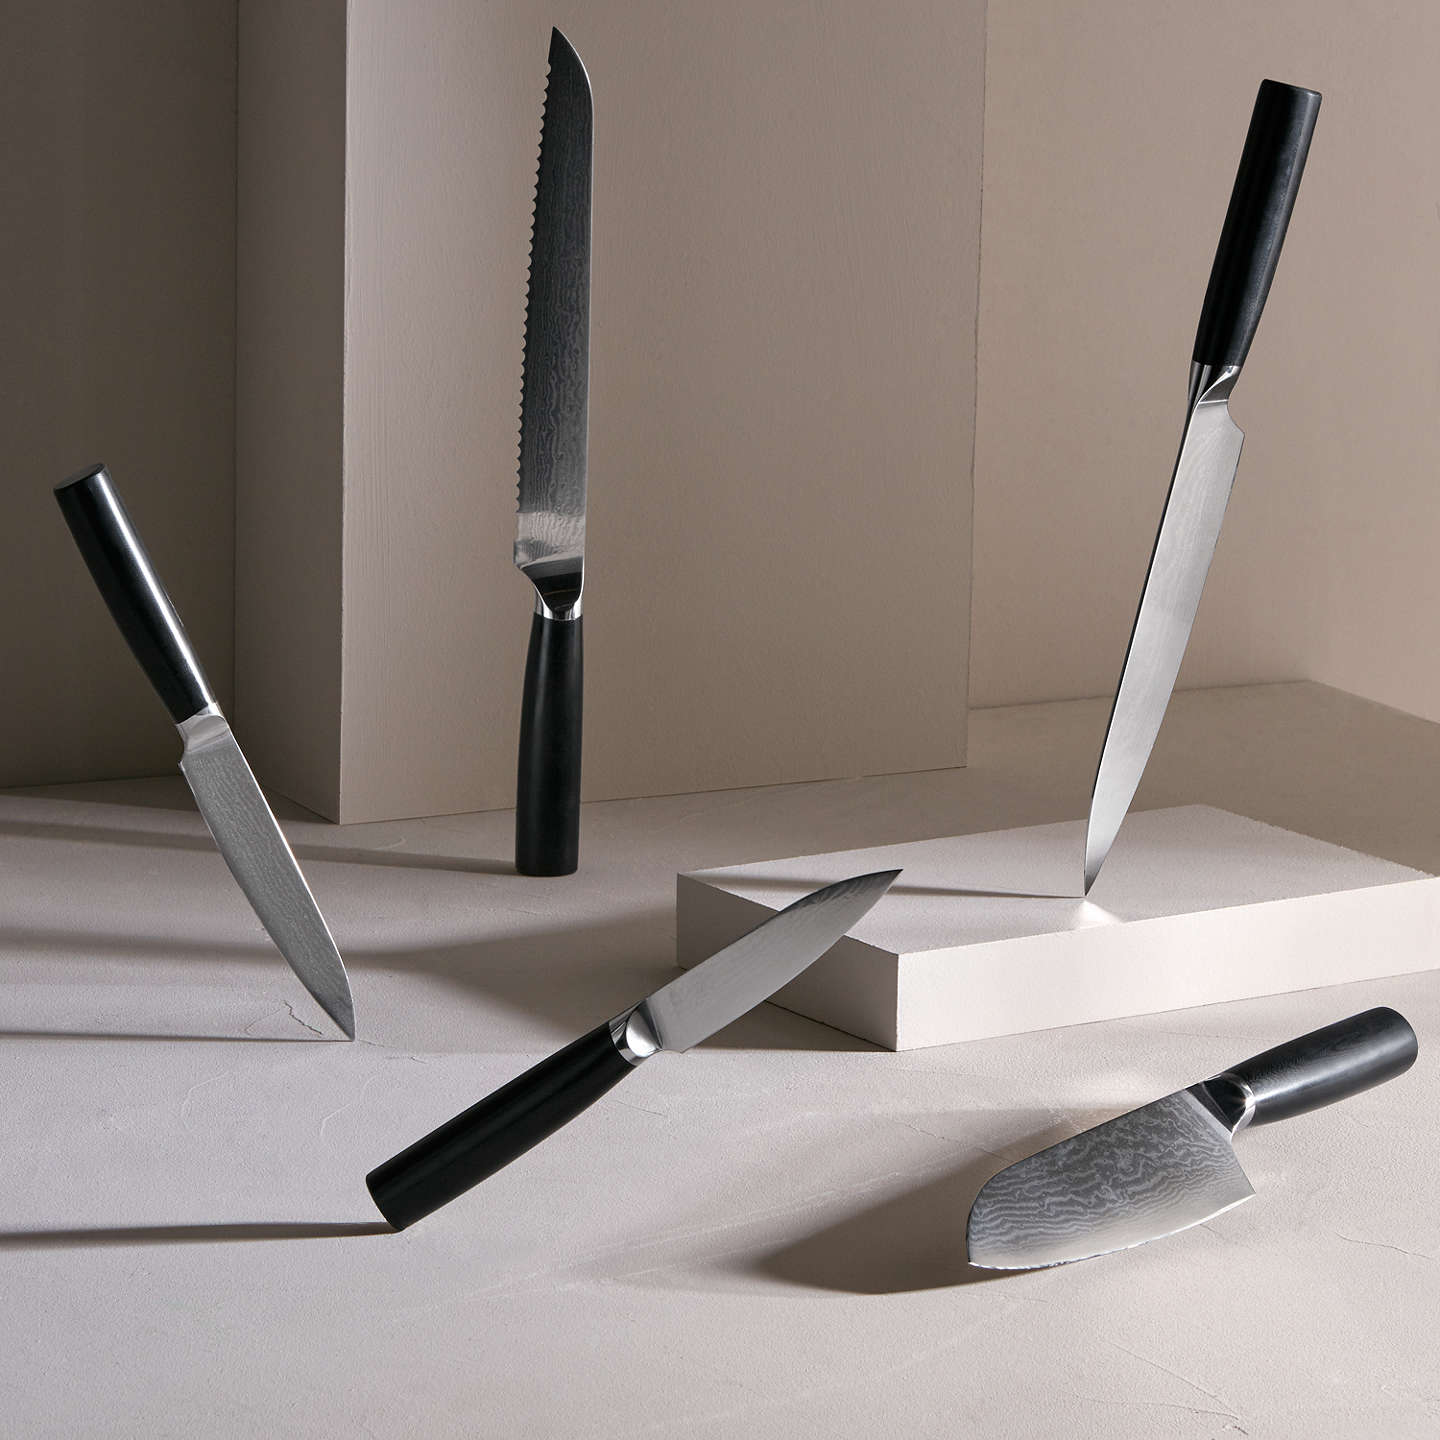 BuyDesign Project by John Lewis No.095 Paring Knife Online at johnlewis.com